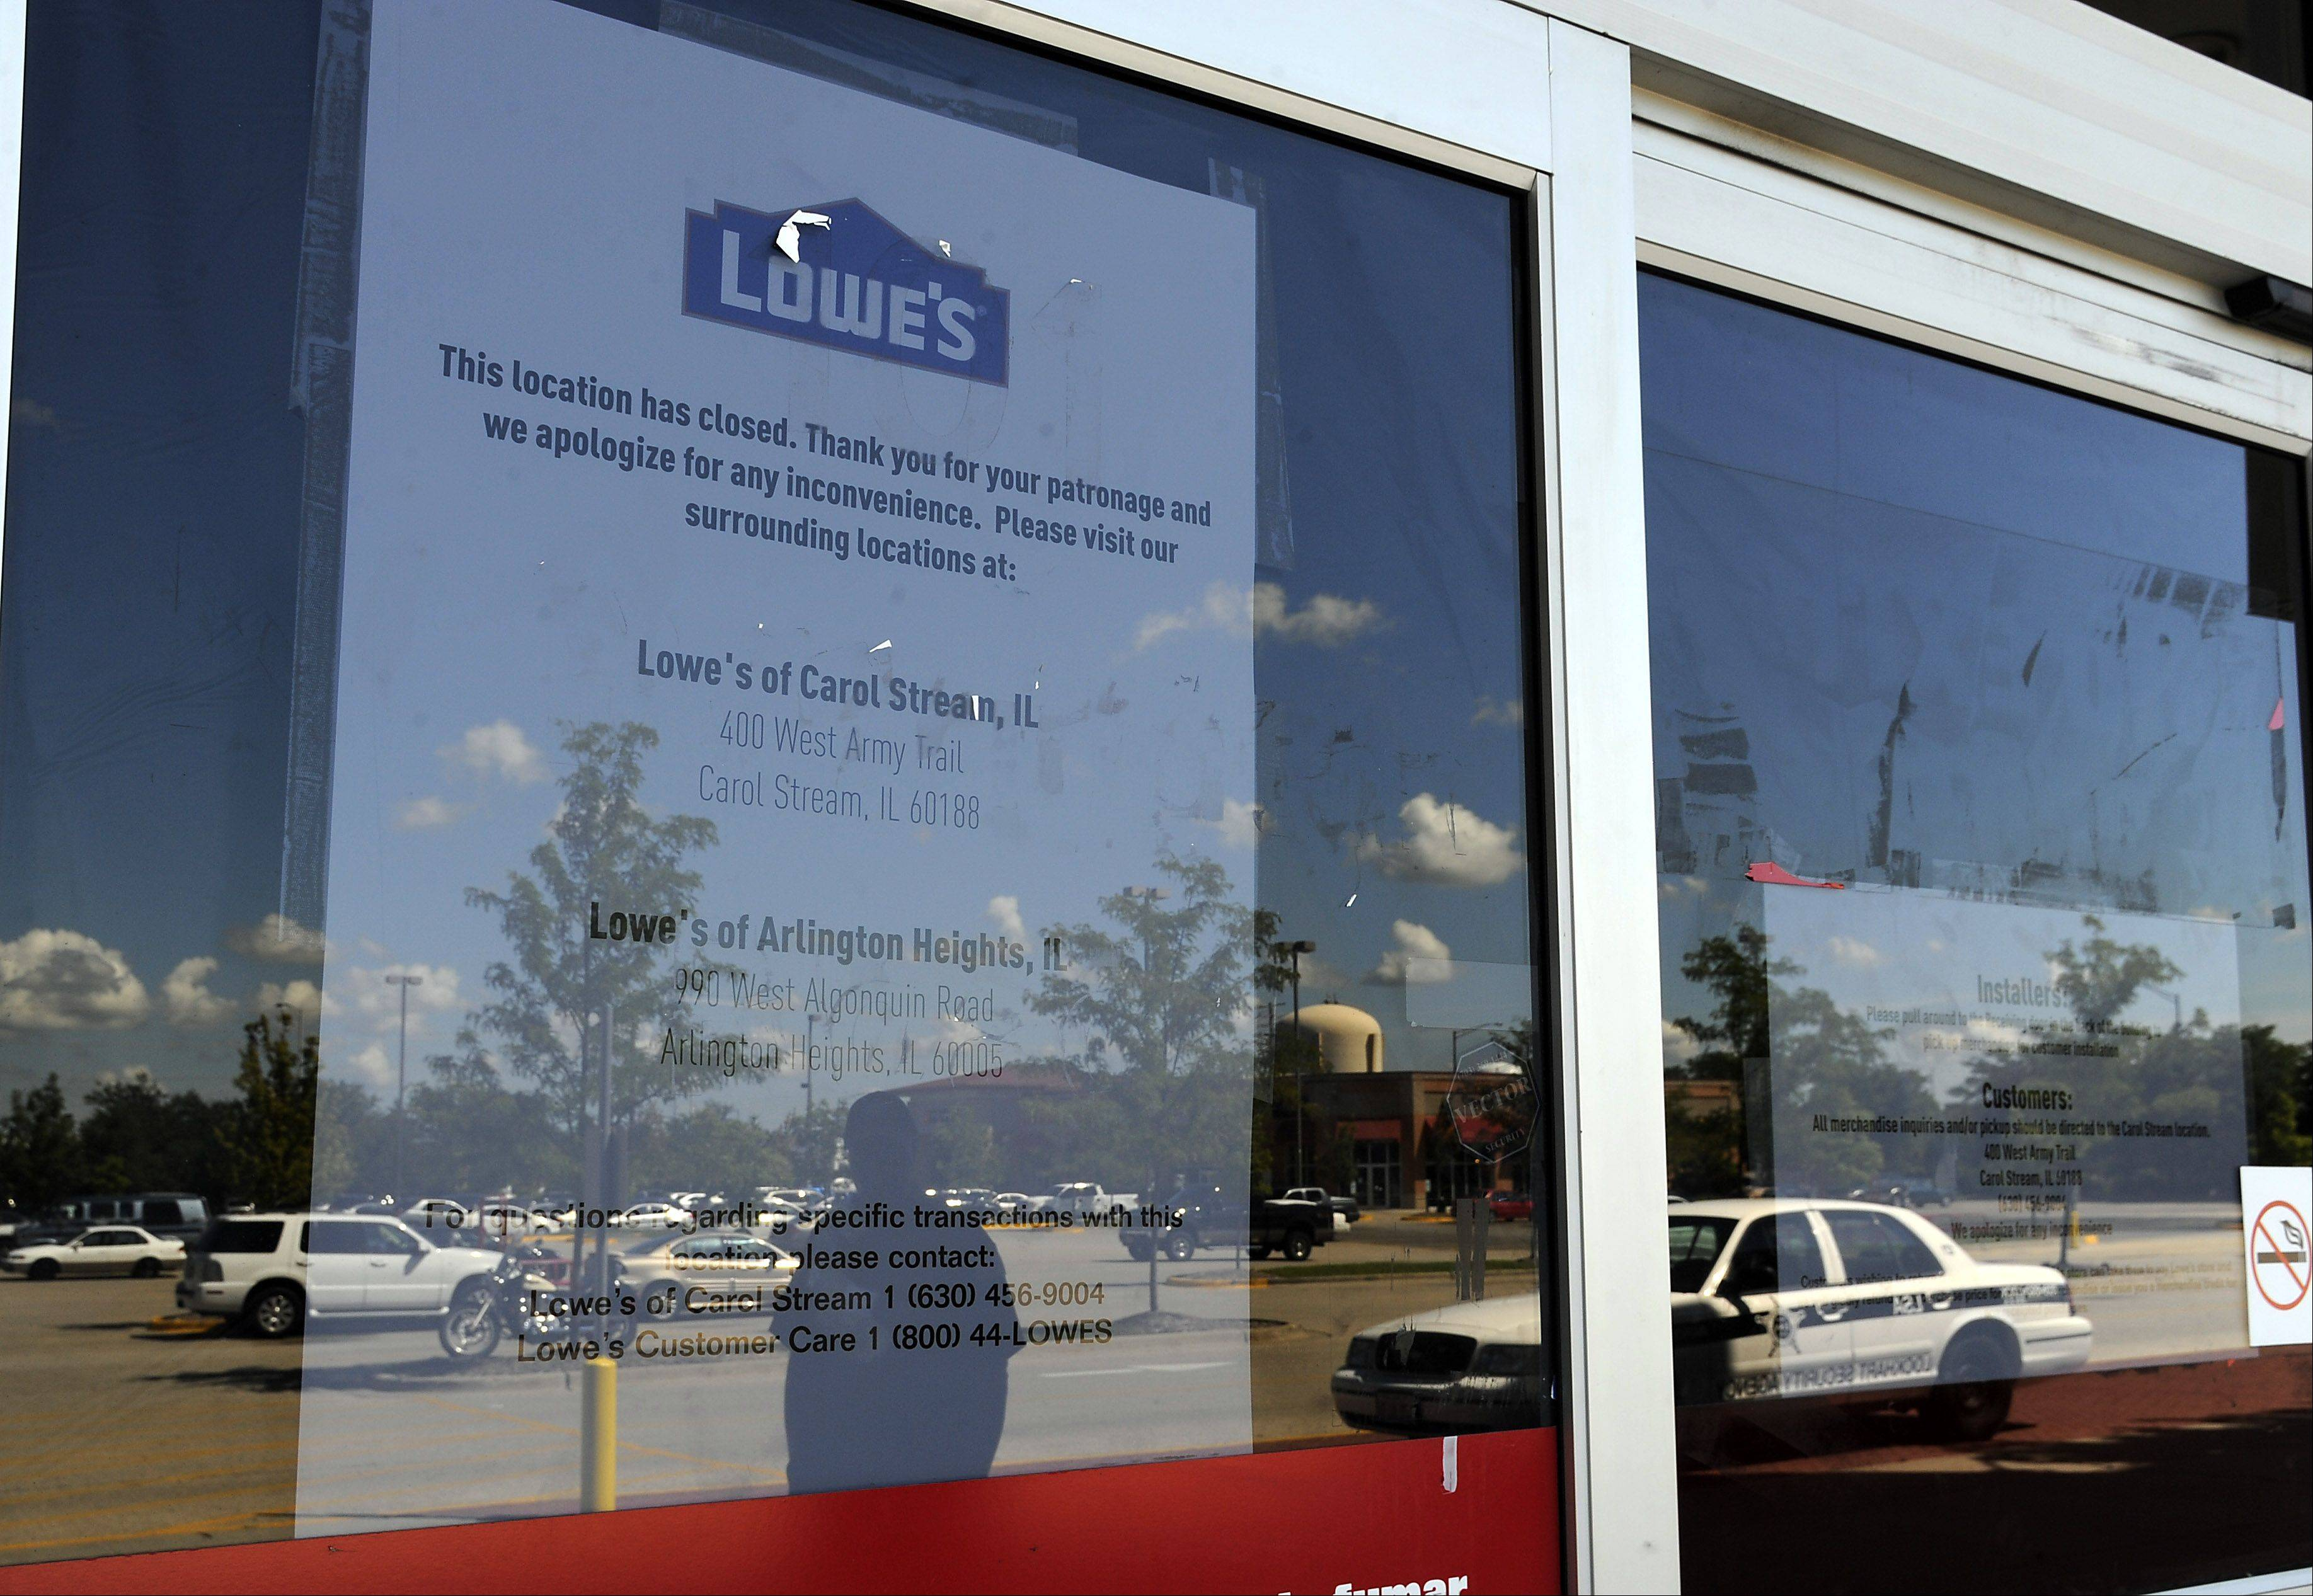 Lowe's closing catches Schaumburg by surprise